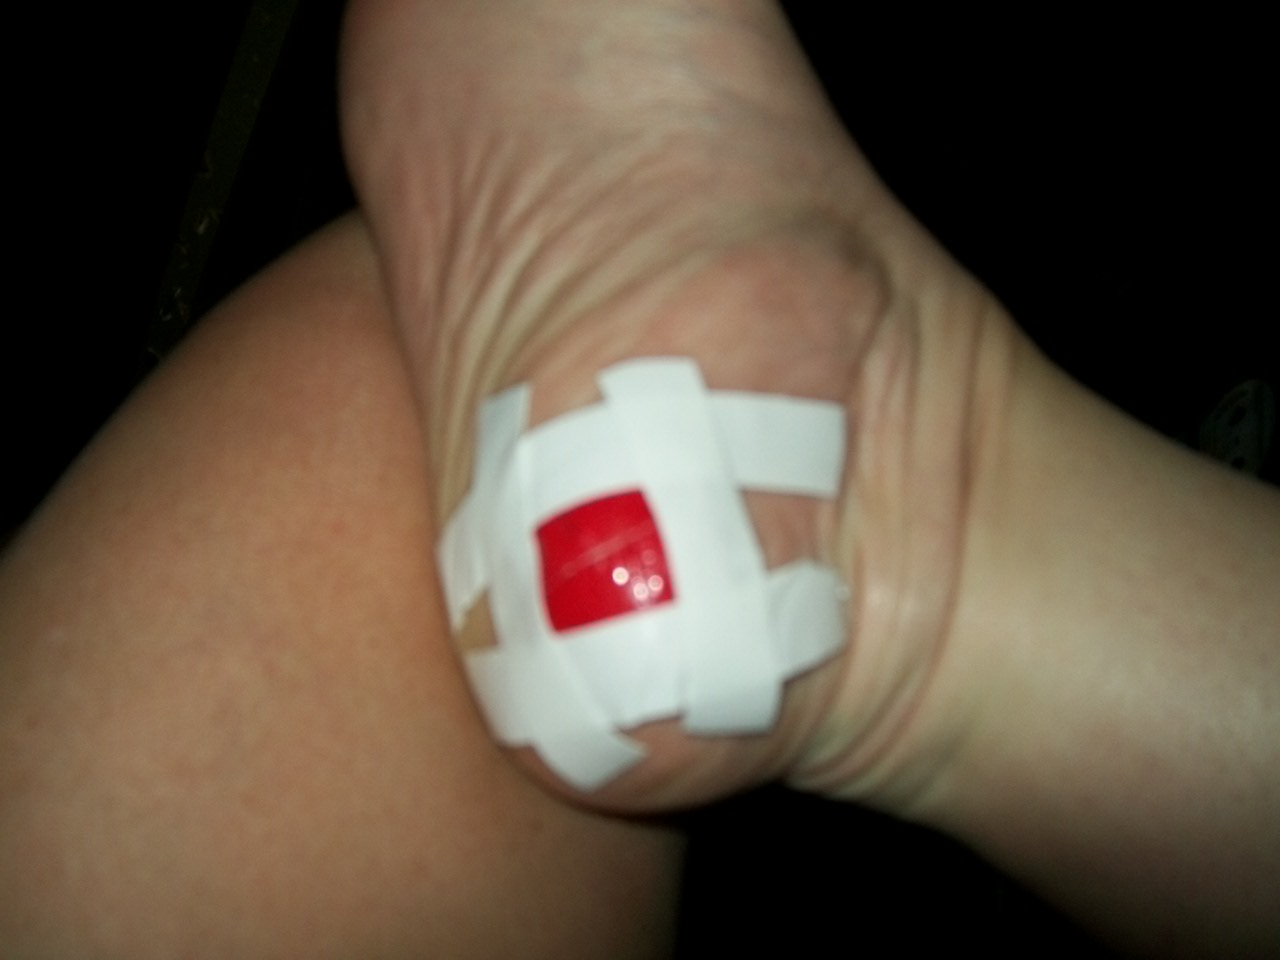 Some people try treating their Plantar wart by covering it with duct tape.  Image Source: ColleensPlantarWart.Blogspot.com - Seek & Destroy: How To Identify, Treat, And Eliminate Stubborn